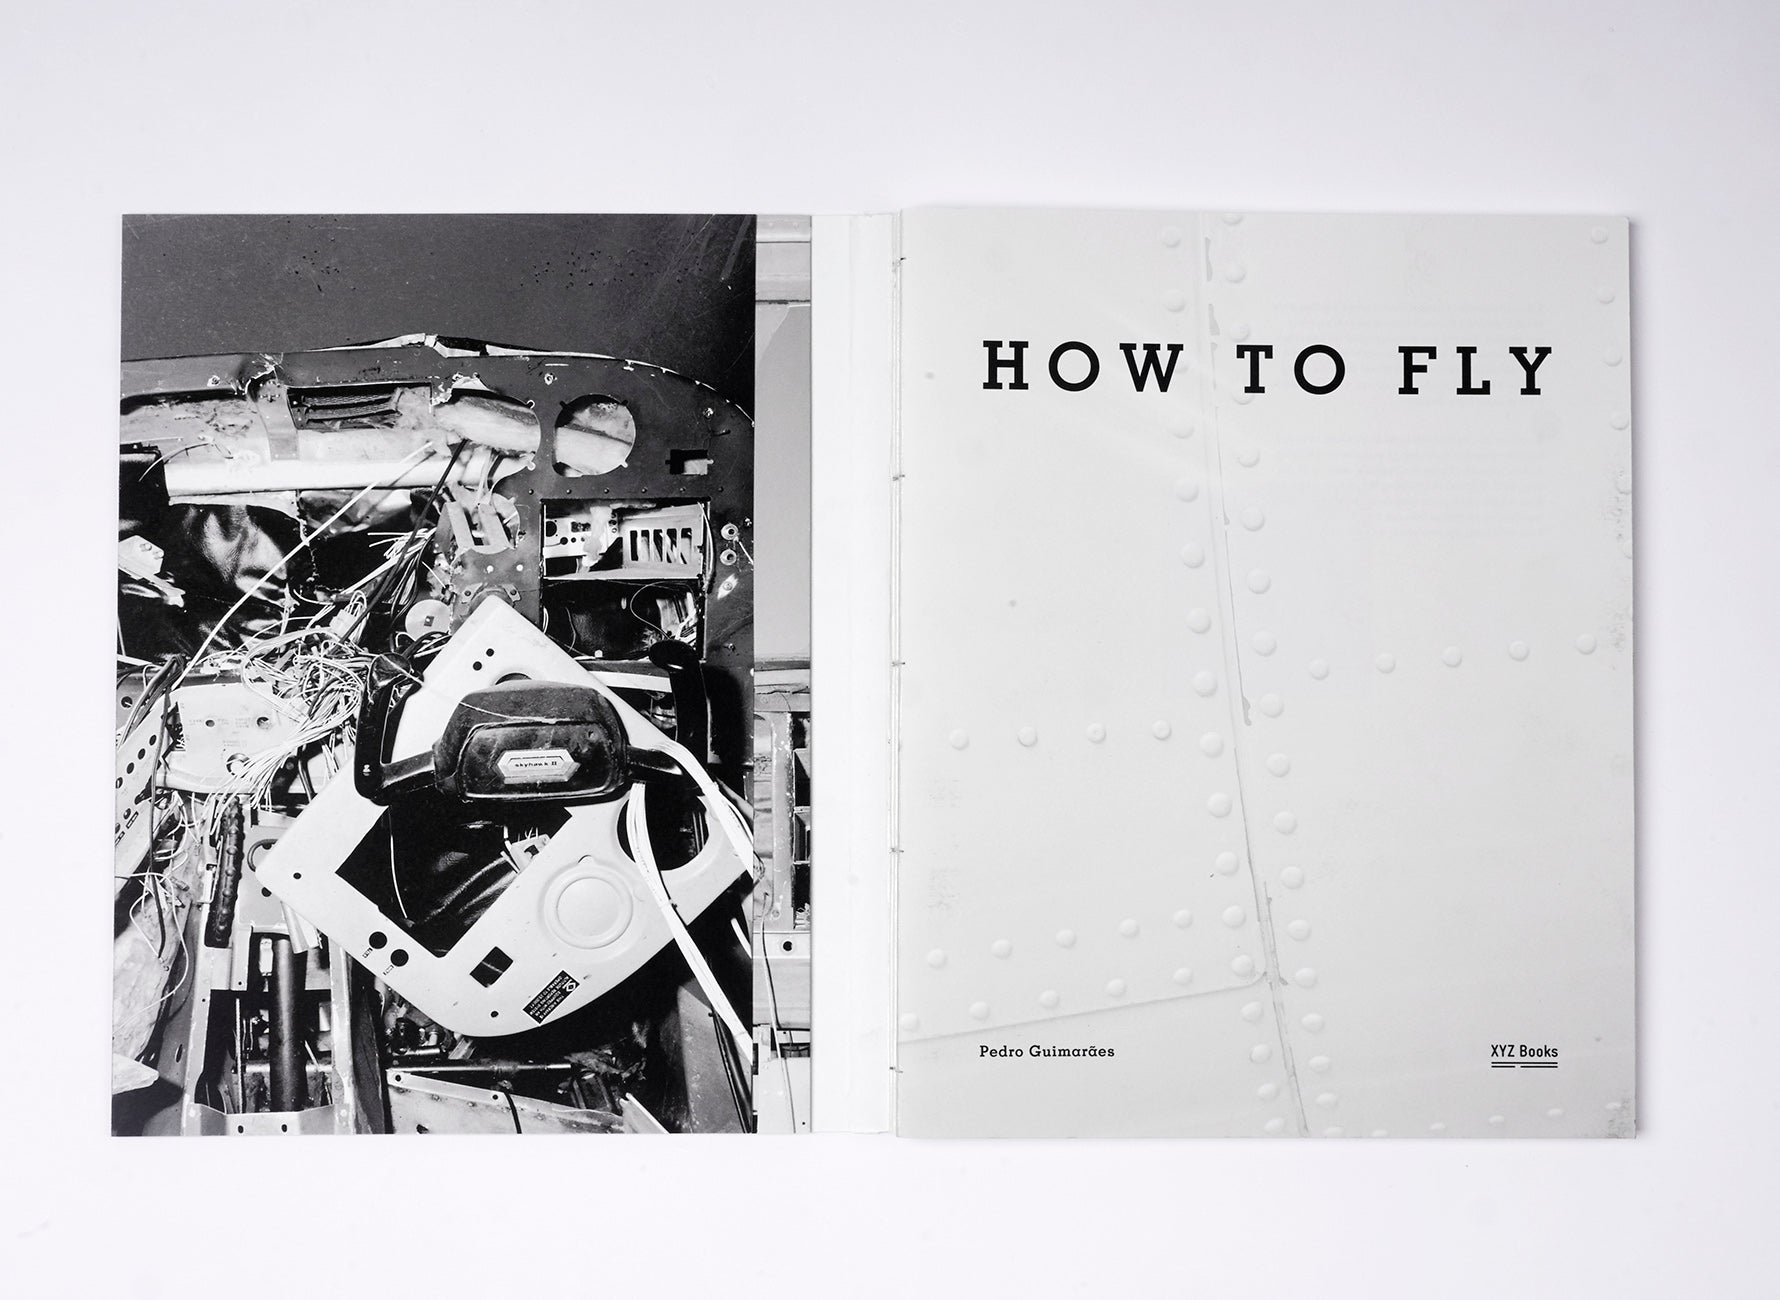 How to Fly, Pedro Guimaraes - The Library Project